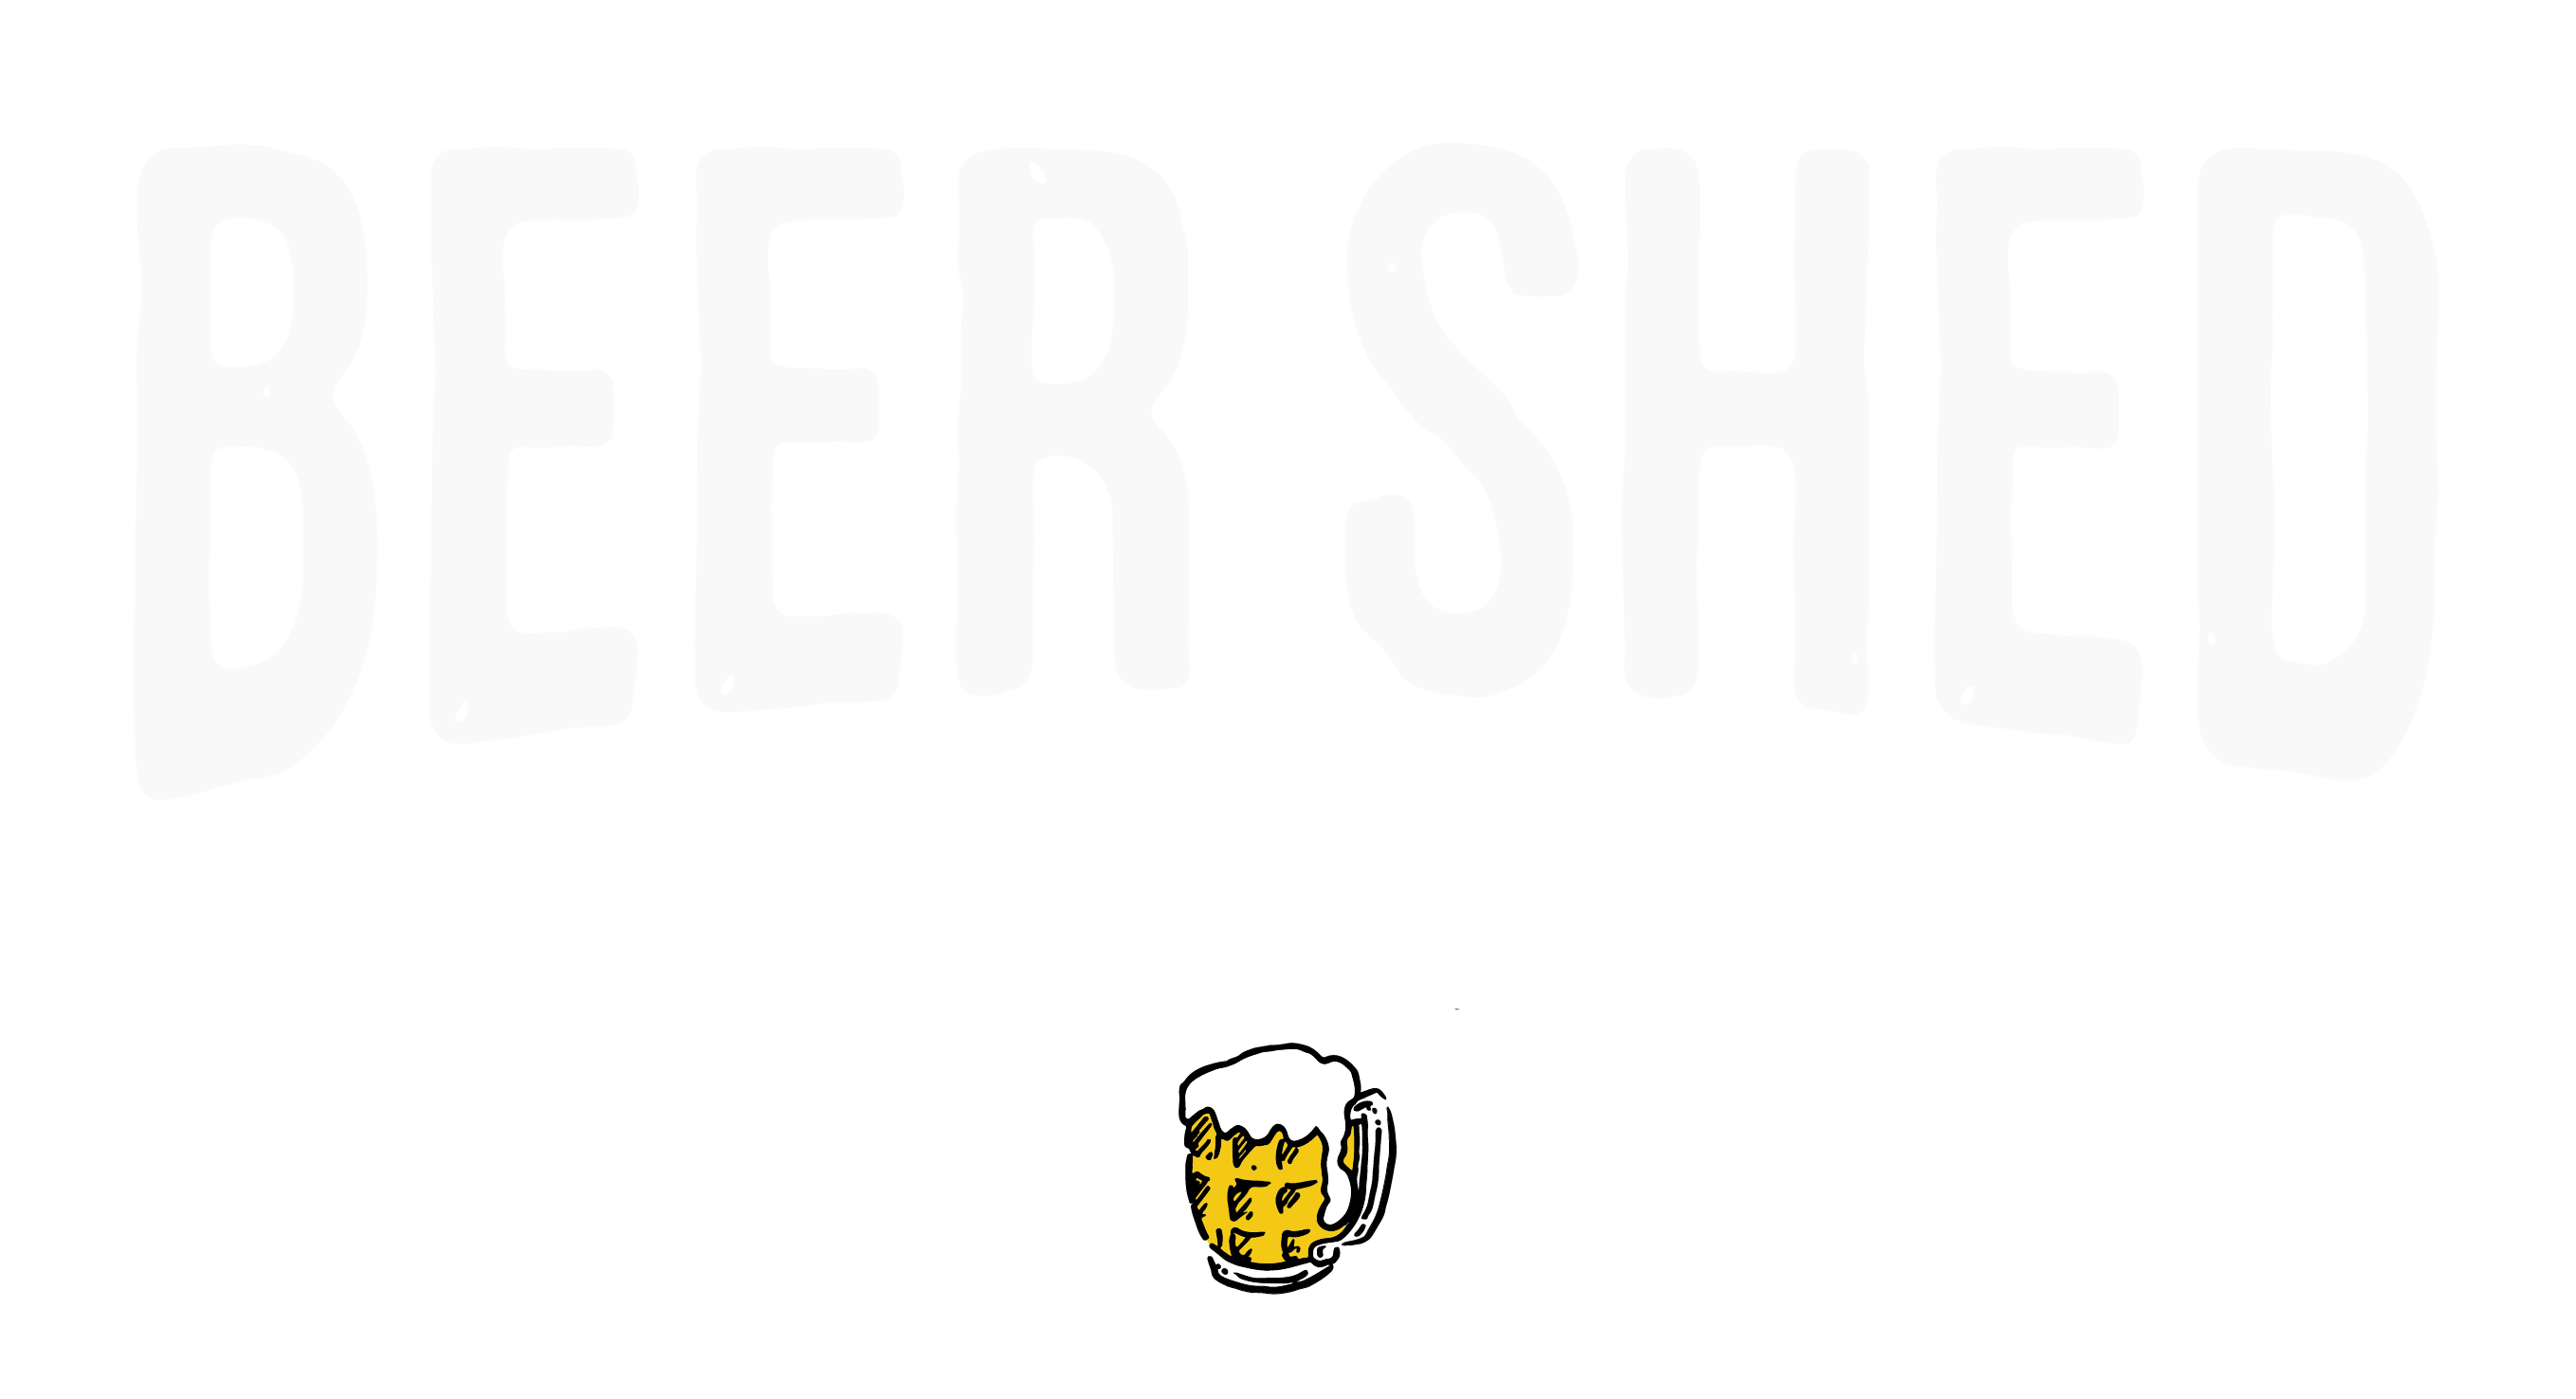 the beer shed Brewing co logo white1